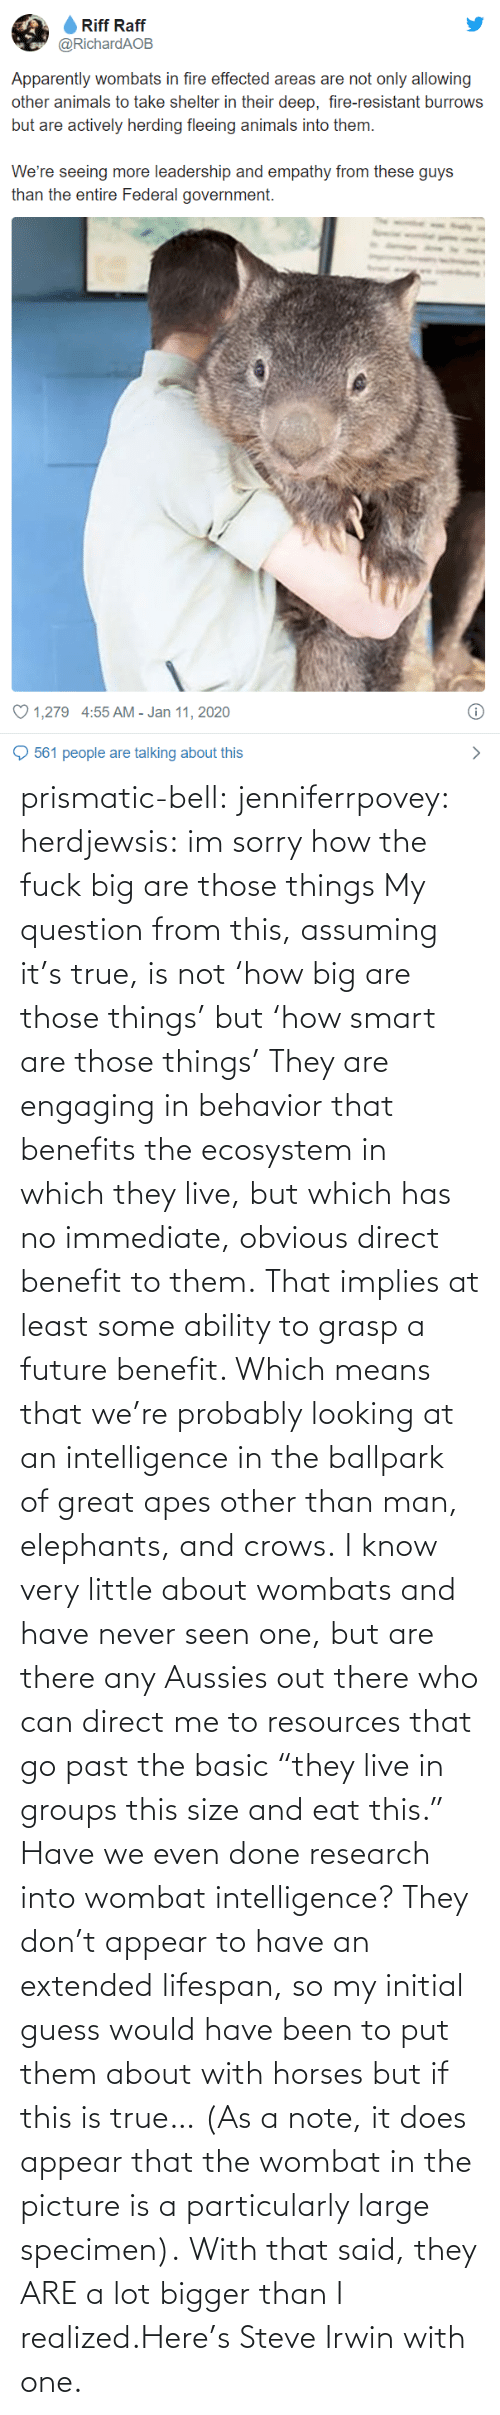 "looking: prismatic-bell:  jenniferrpovey: herdjewsis: im sorry how the fuck big are those things My question from this, assuming it's true, is not 'how big are those things' but 'how smart are those things' They are engaging in behavior that benefits the ecosystem in which they live, but which has no immediate, obvious direct benefit to them. That implies at least some ability to grasp a future benefit. Which means that we're probably looking at an intelligence in the ballpark of great apes other than man, elephants, and crows. I know very little about wombats and have never seen one, but are there any Aussies out there who can direct me to resources that go past the basic ""they live in groups this size and eat this."" Have we even done research into wombat intelligence? They don't appear to have an extended lifespan, so my initial guess would have been to put them about with horses but if this is true… (As a note, it does appear that the wombat in the picture is a particularly large specimen).  With that said, they ARE a lot bigger than I realized.Here's Steve Irwin with one."